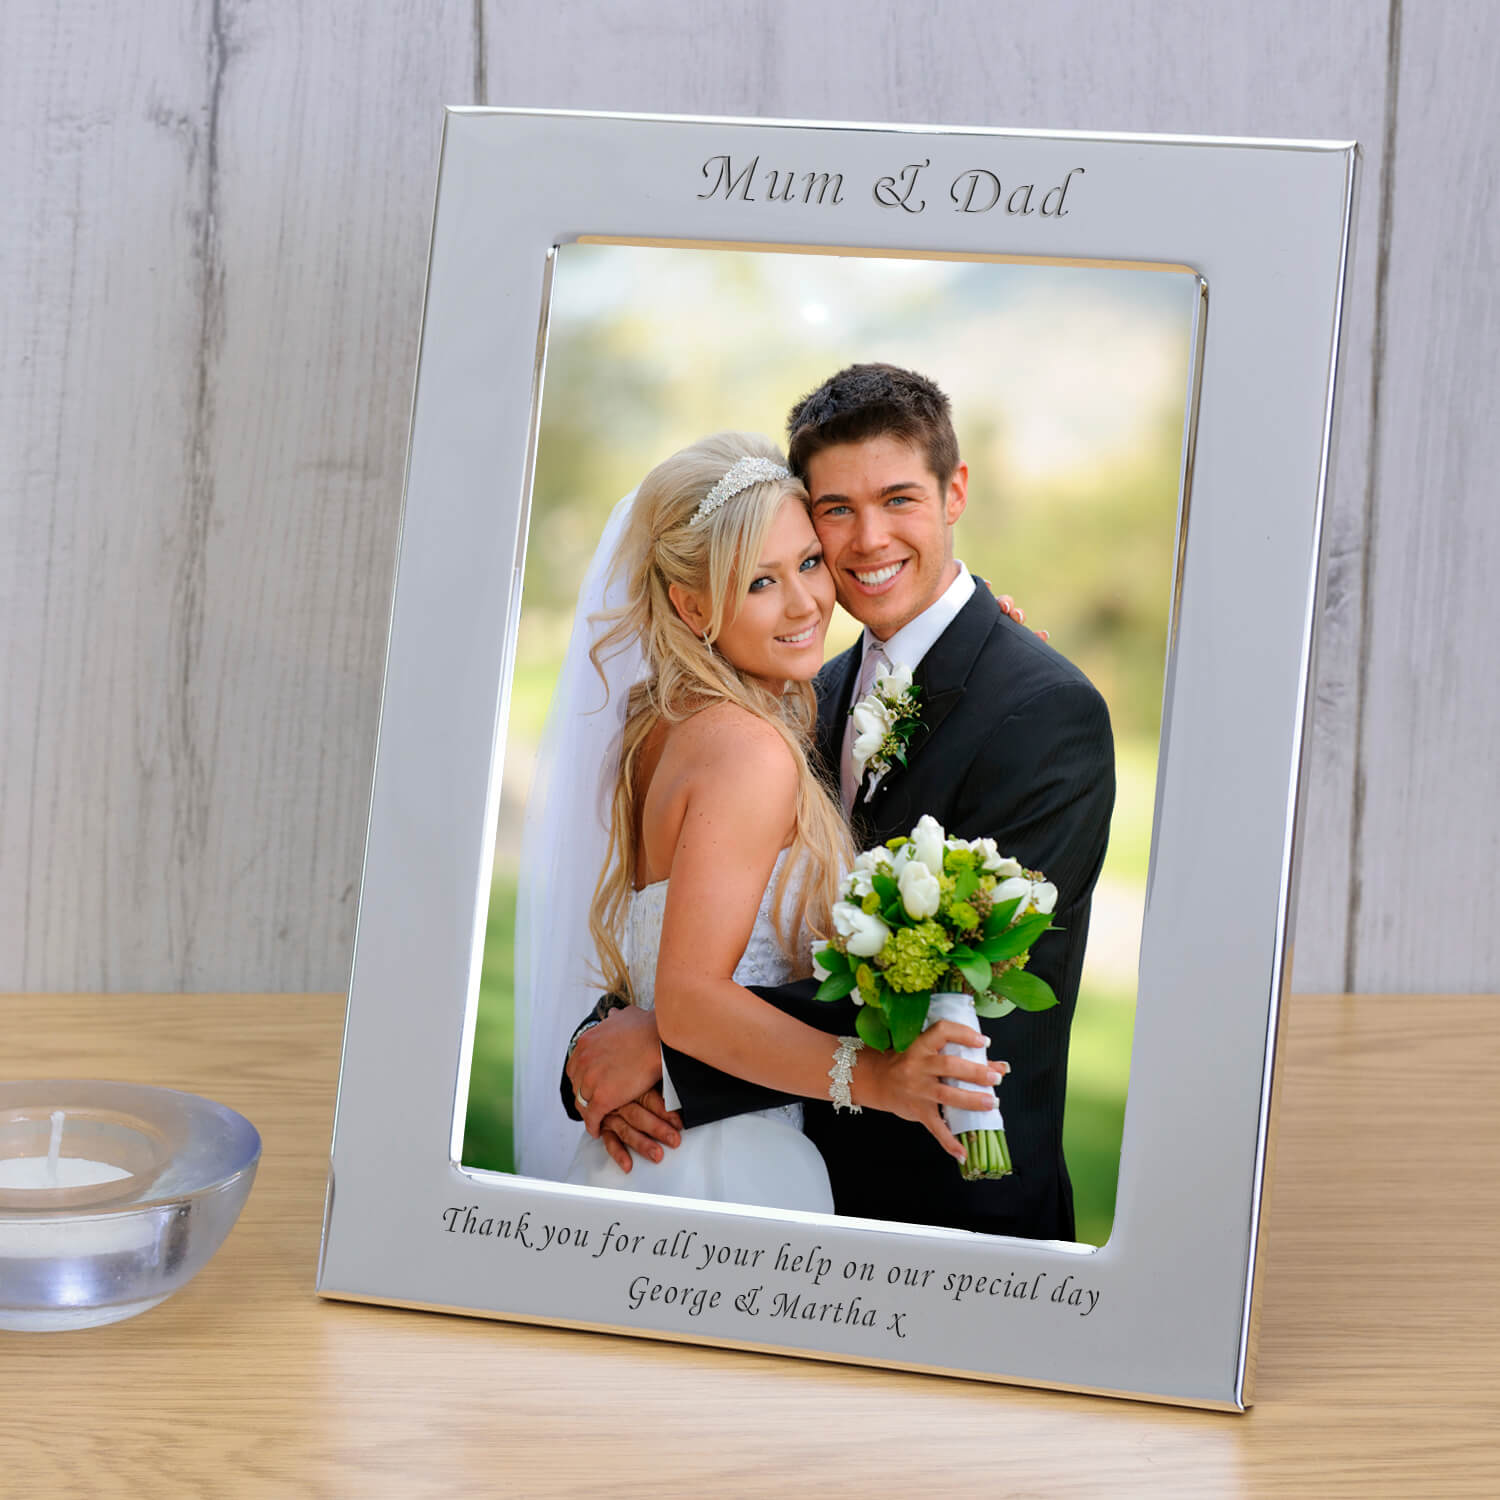 Personalised Silver Plated Photo Frame – Mum & Dad